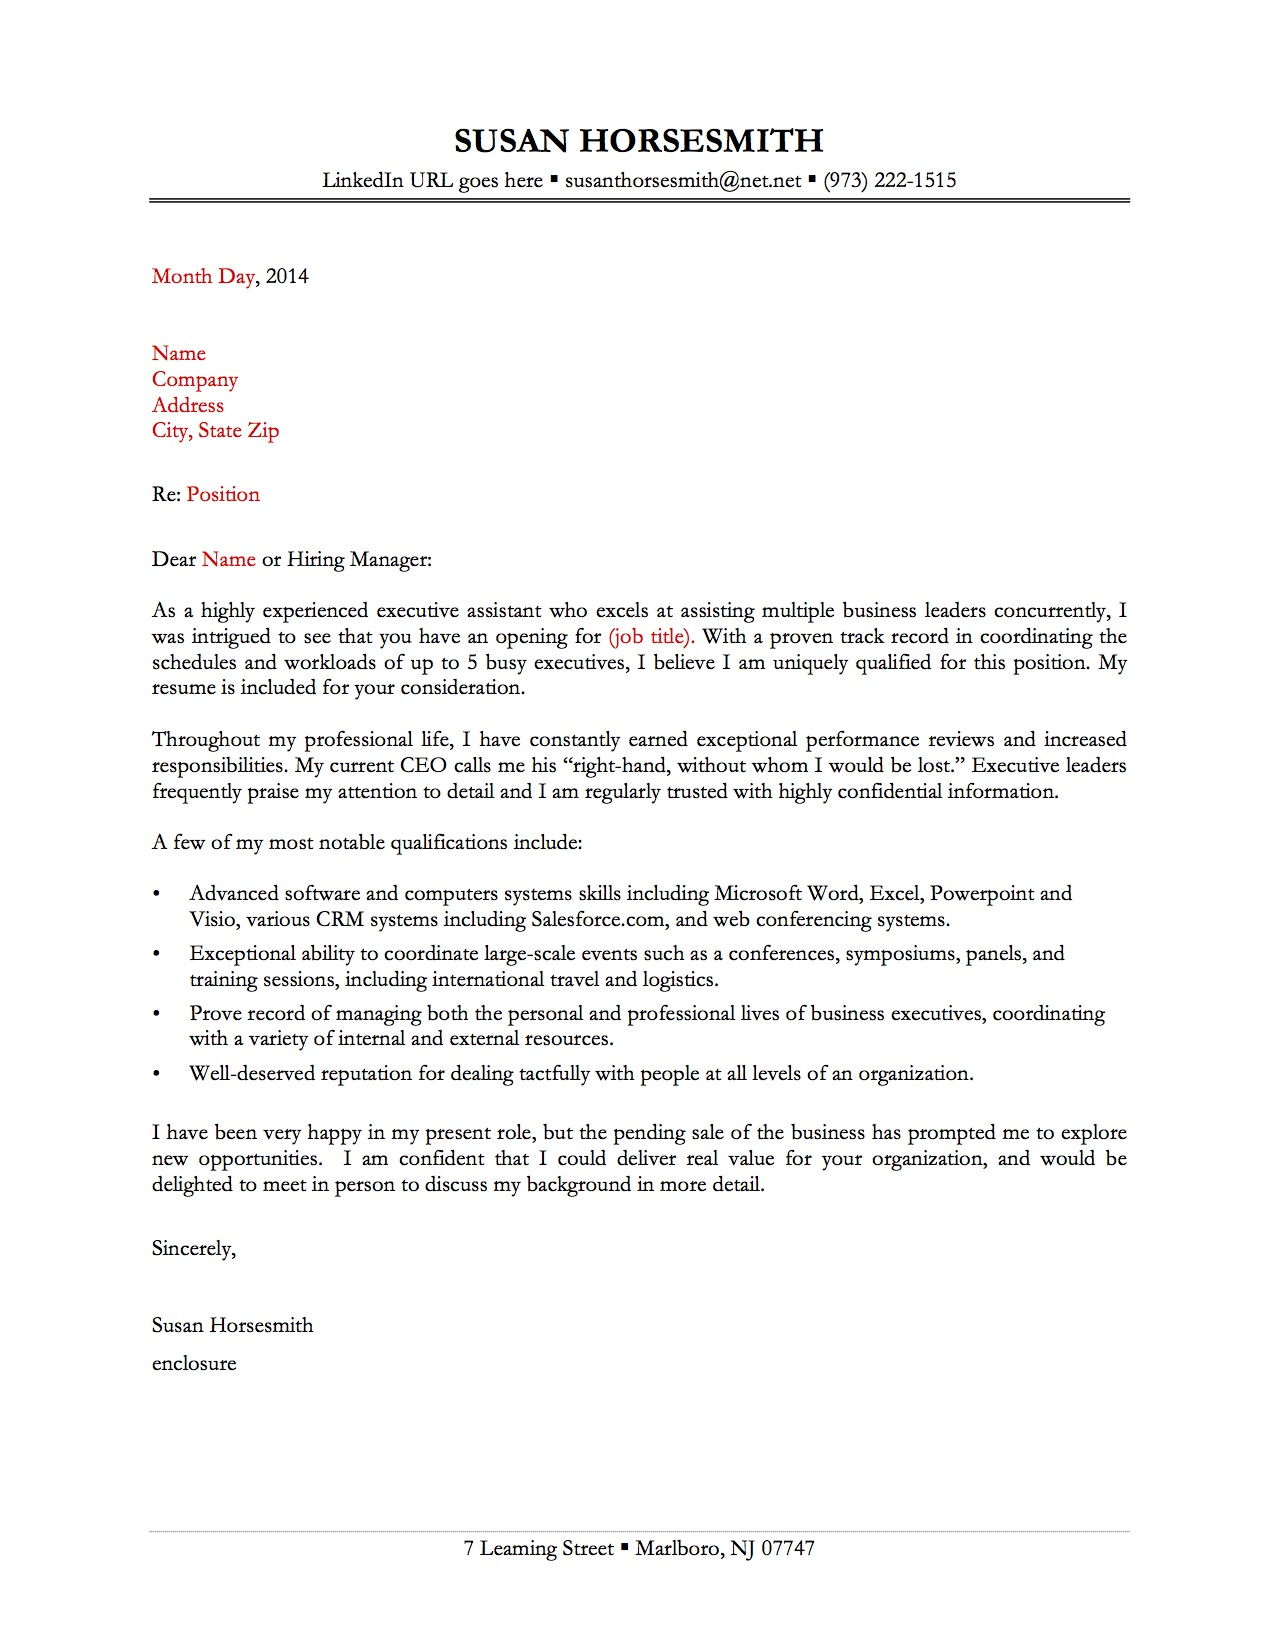 Sample Cover Letter 1  What Is In A Cover Letter